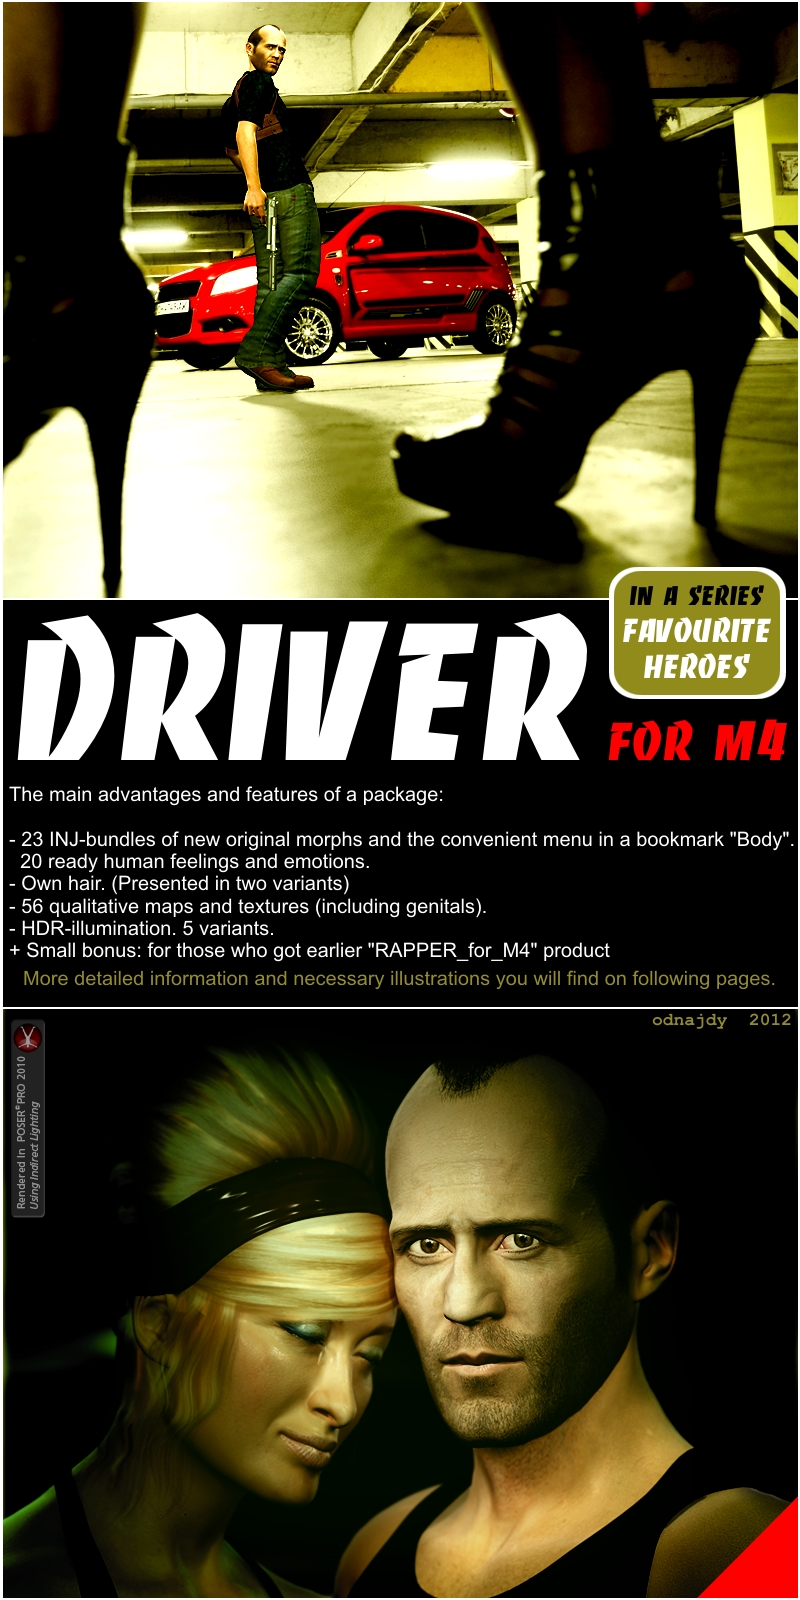 DRIVER for M4